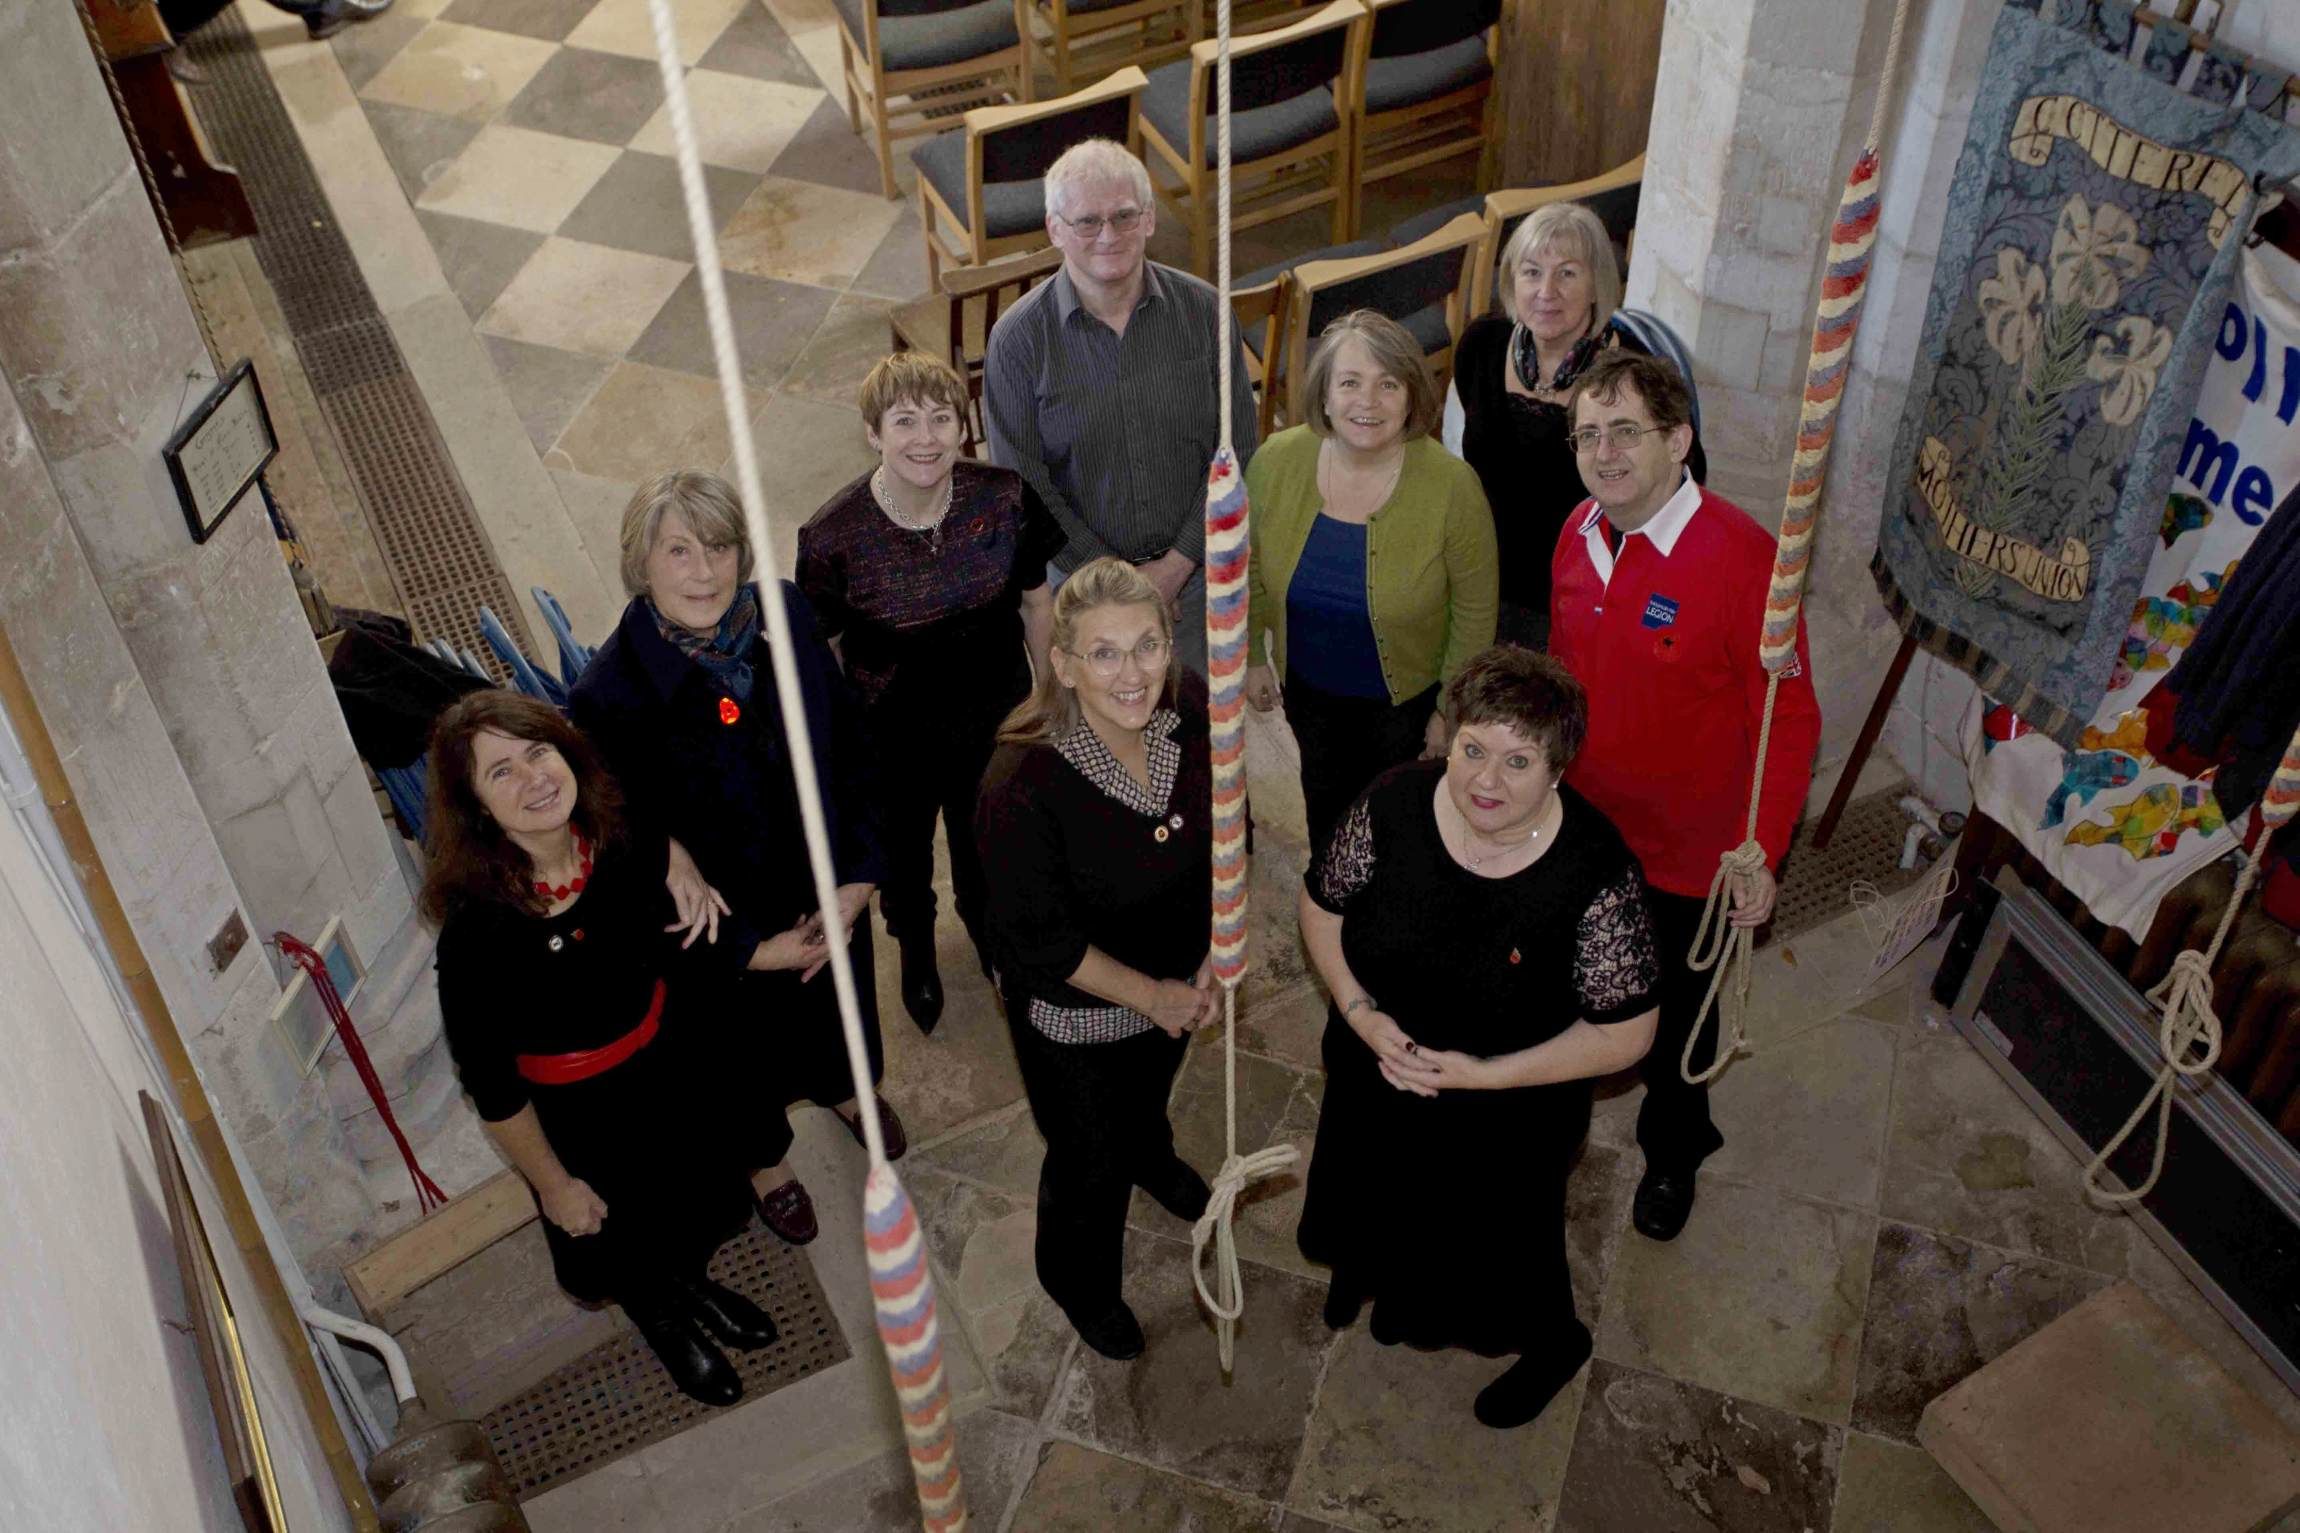 Left to right:  Jenny Thomson, Rita Broxup, Melanie Shaw, Simon Cassia (back), Lois Kennedy (front), Christine Robinson (Conductor, in green), Tina Reed (front), Sian Reed (back) and David Morgan (far right).